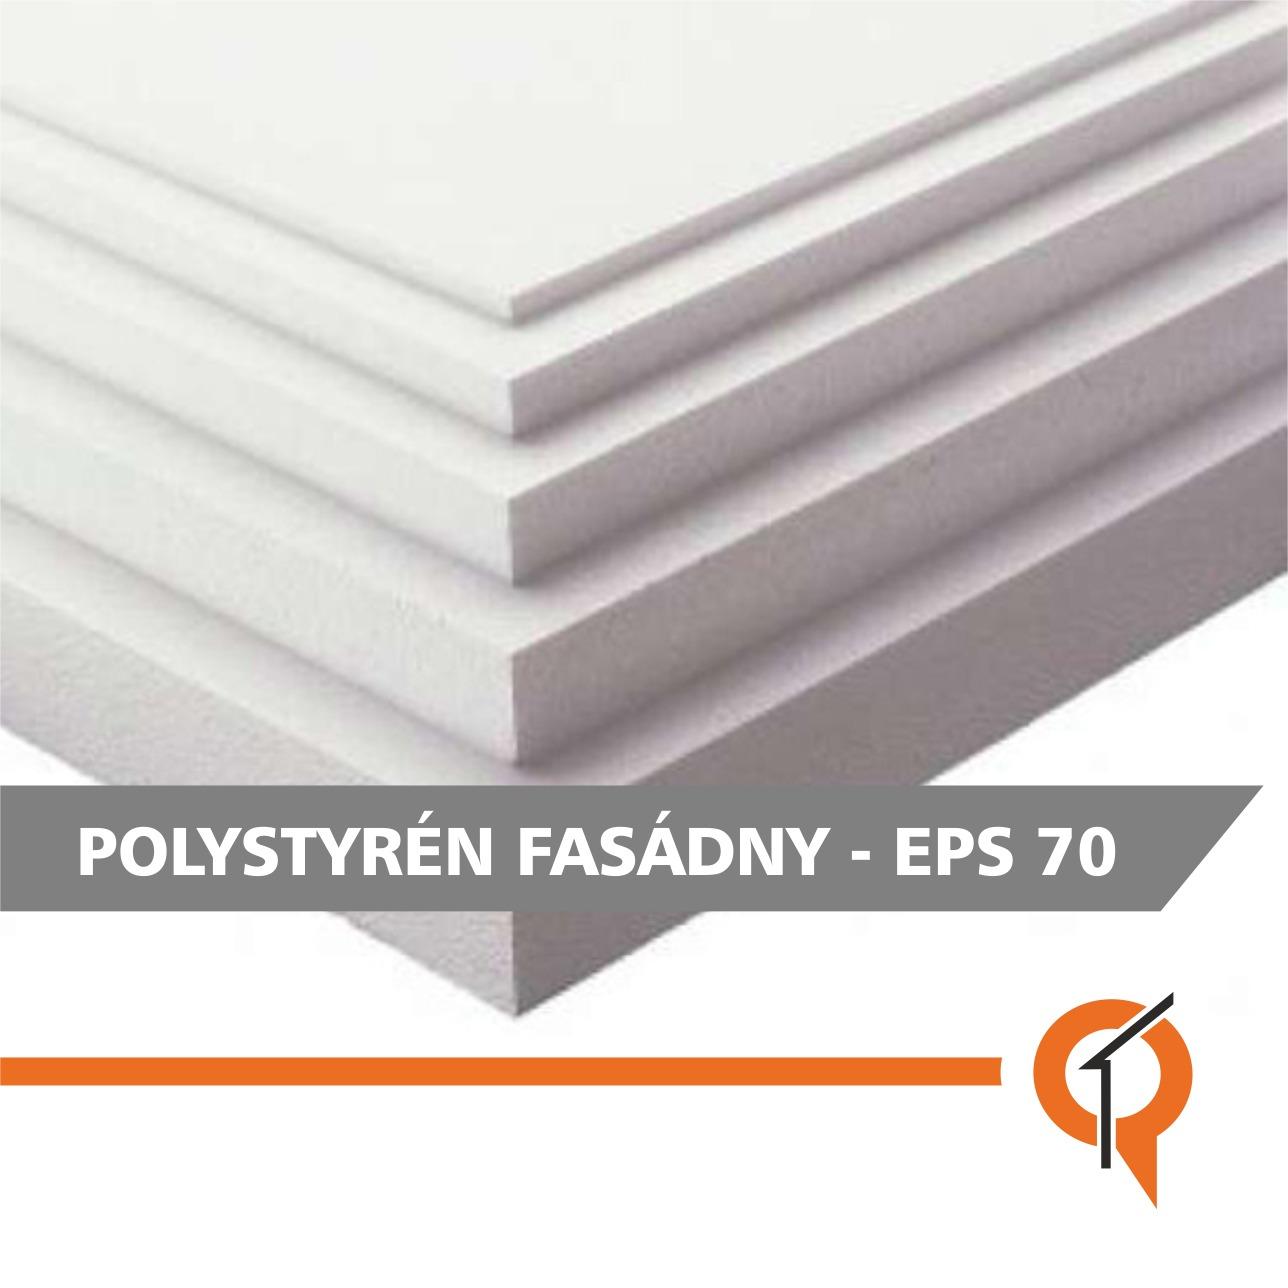 eps_70_polystyren_fasadny_qtrend